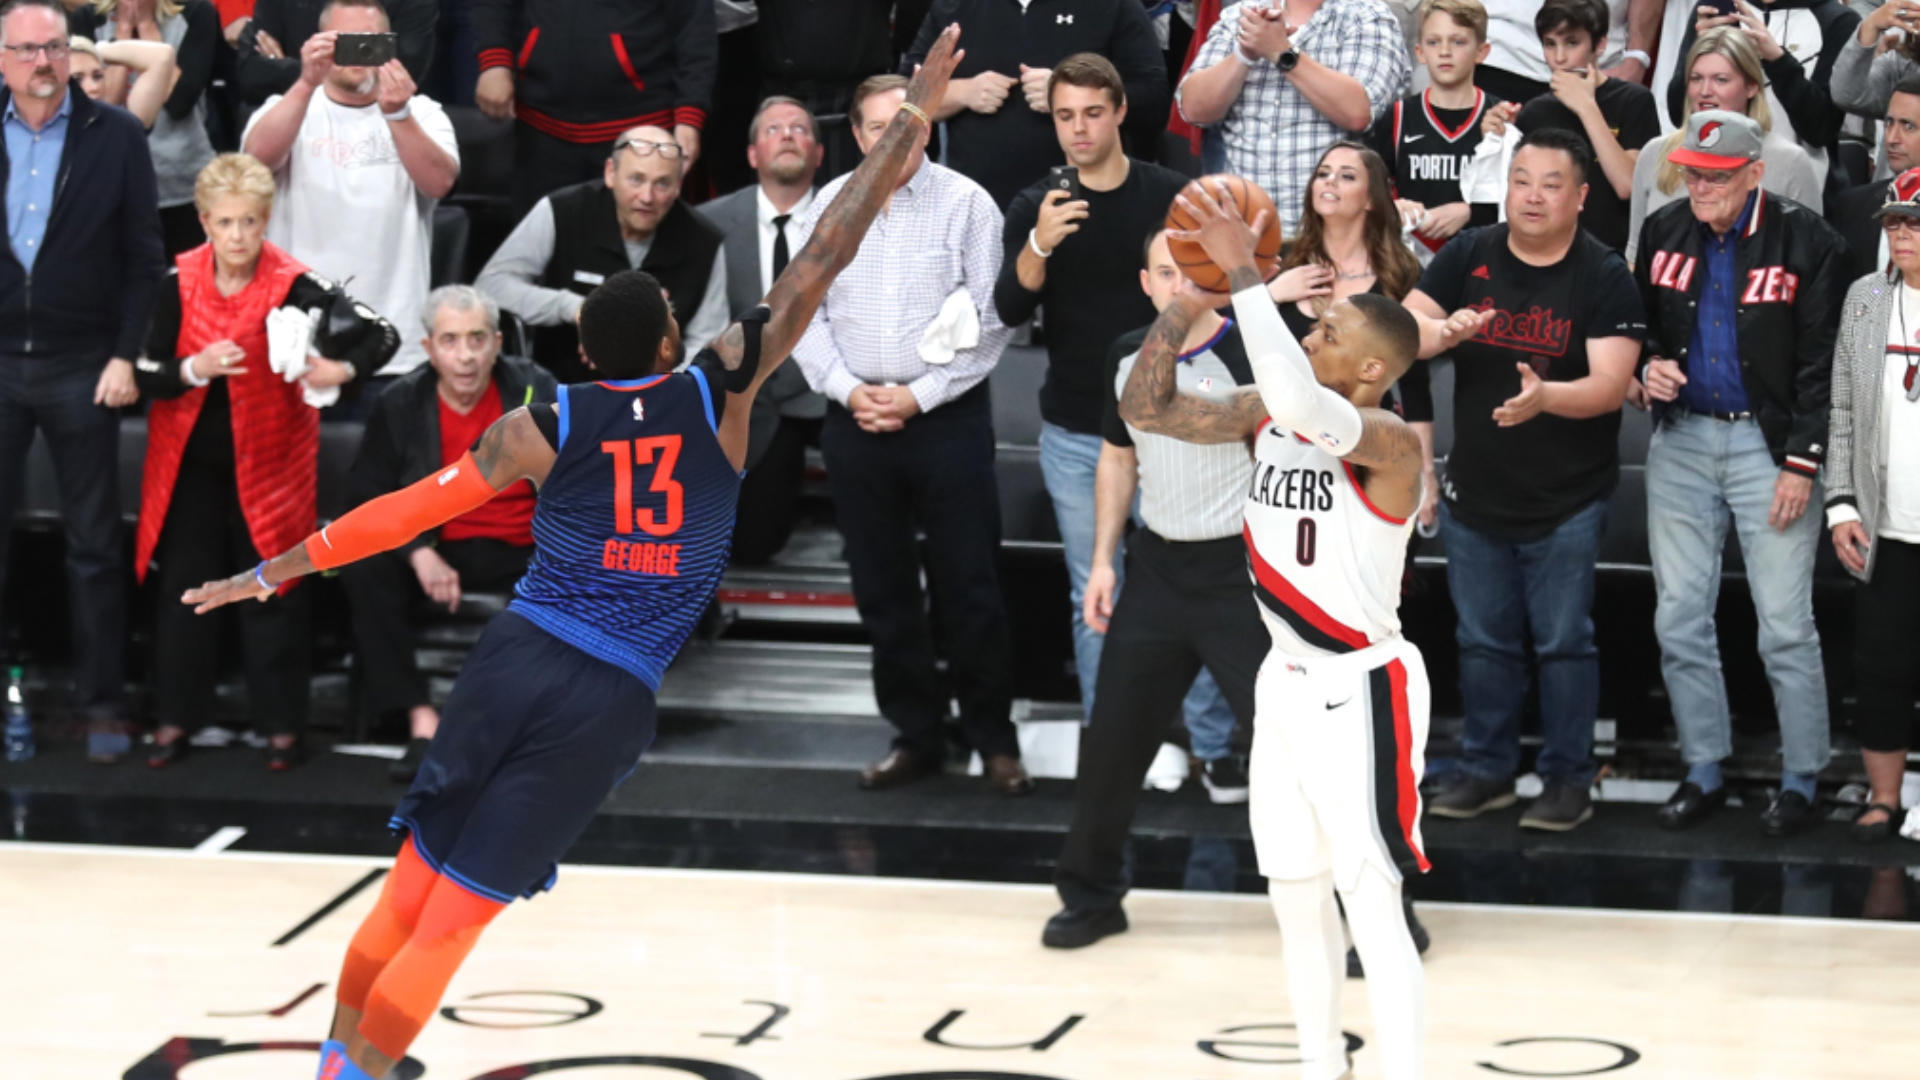 NBA playoffs scores, highlights, results: Damian Lillard sends Thunder home; Raptors, 76ers advance; Nuggets go up 3-2 on Spurs